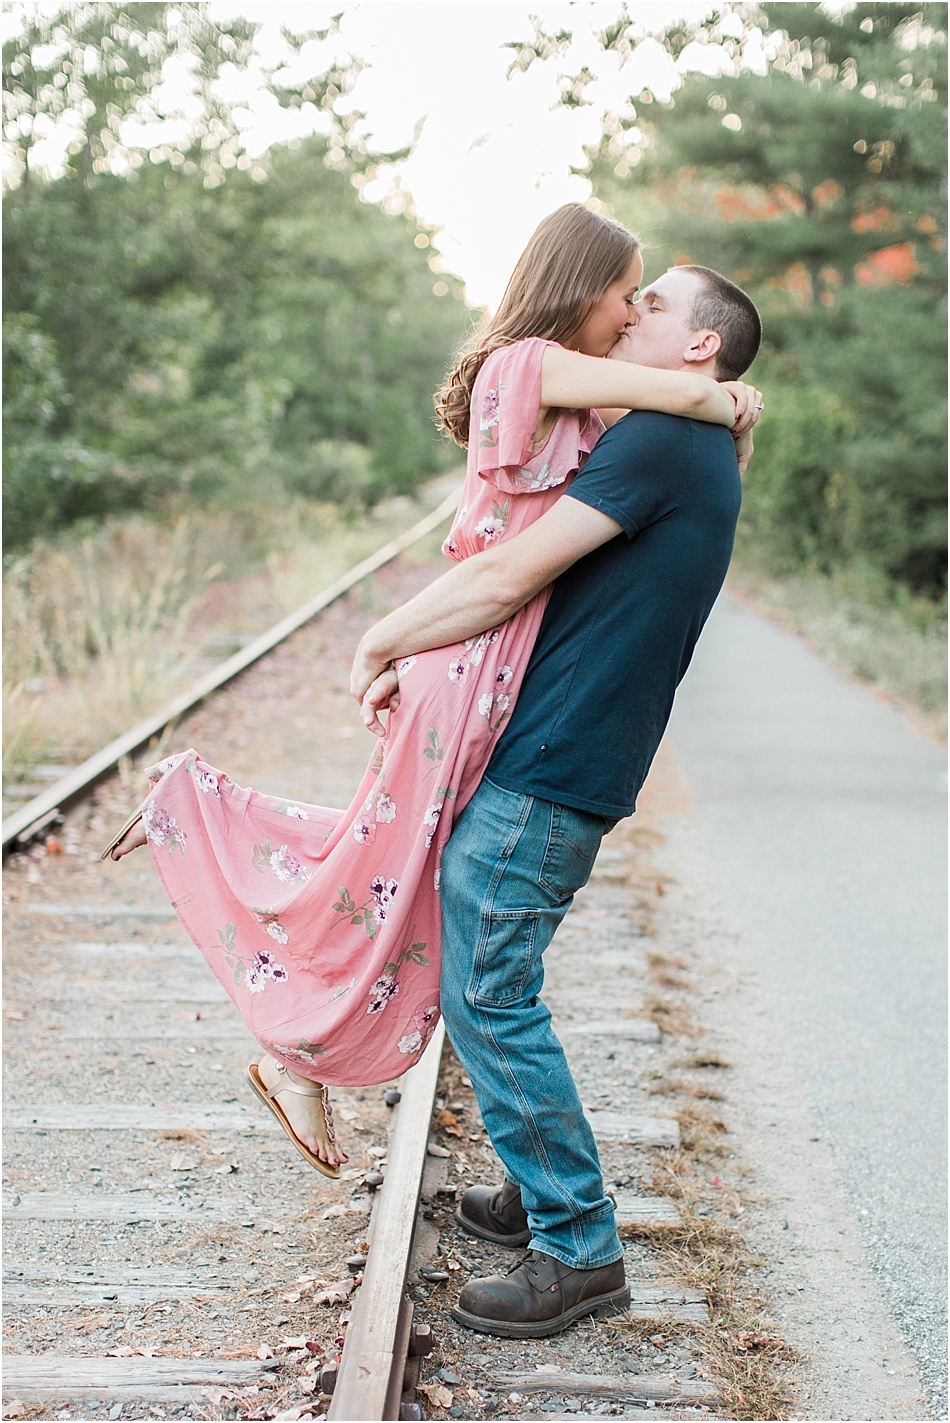 windham_maine_engagement_jackie_brad_cape_cod_boston_wedding_photographer_Meredith_Jane_Photography_photo_0175.jpg